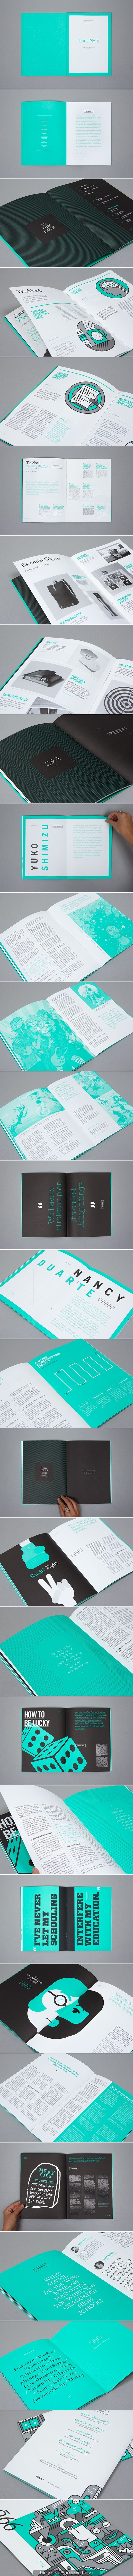 99U Quarterly Magazine Issue No3. Love the colors and layout on this.